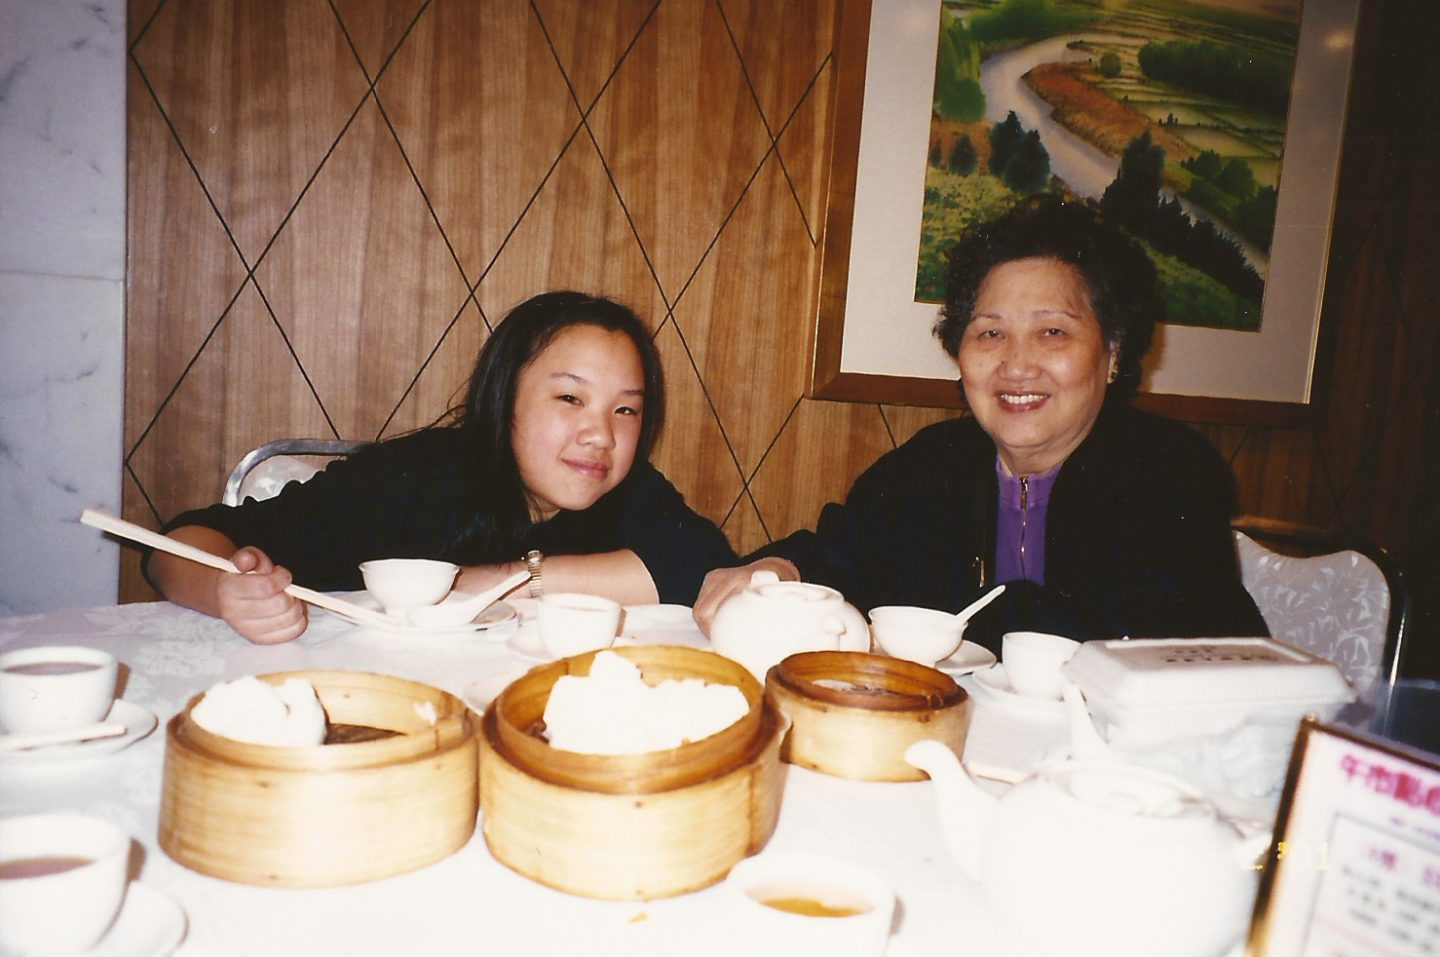 Me and my grandma in Hong Kong eating dim sum